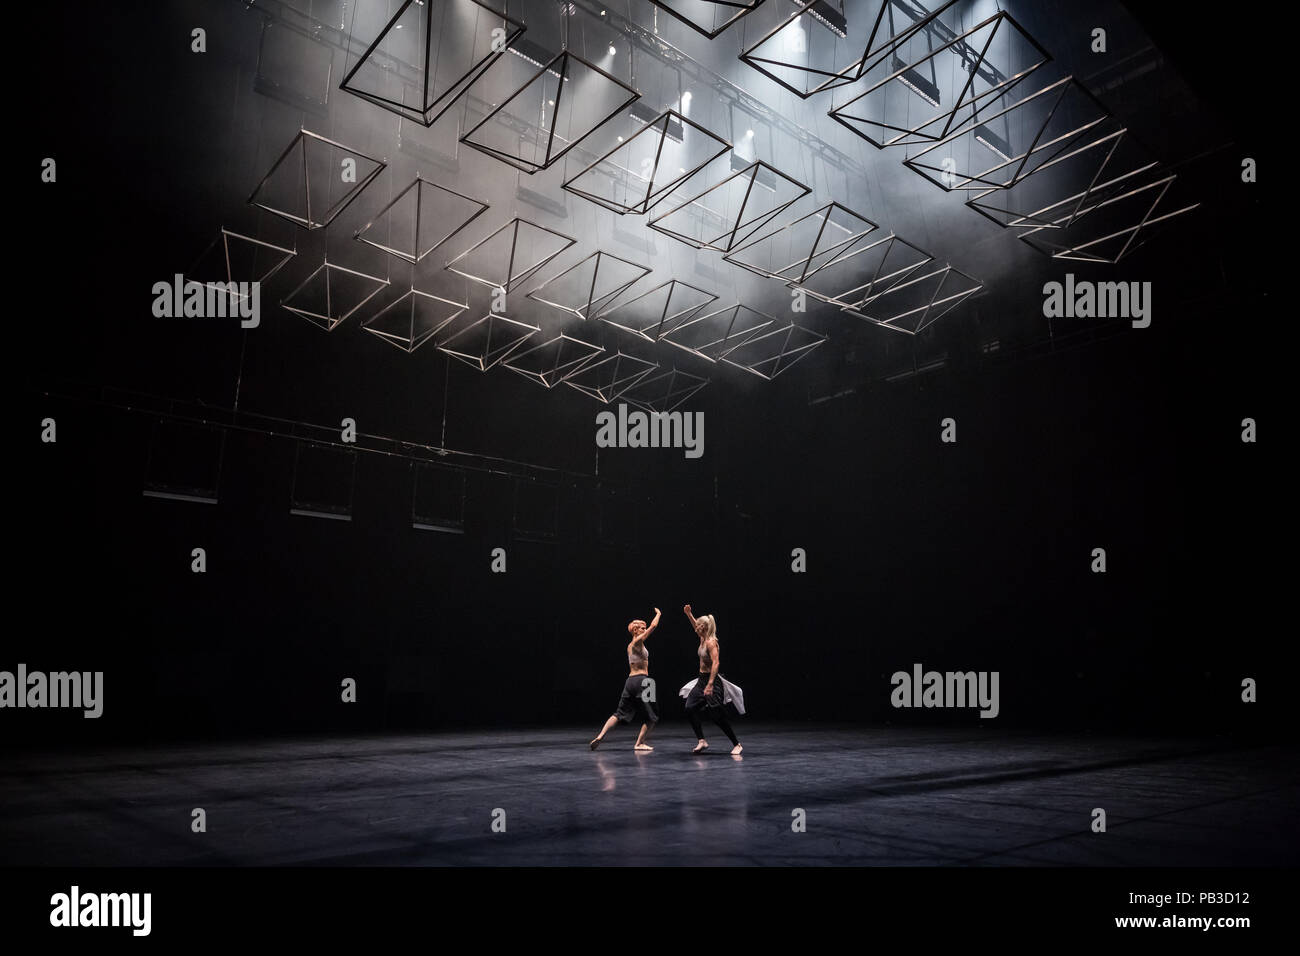 London, UK. 26th July 2018. 'Autobiography' contemporary dance performance by Company Wayne McGregor returns to Sadler's Wells theatre. McGregor's choreography presents and abstract meditation on aspects of self, life, writing and remembered pasts and speculative futures. Credit: Guy Corbishley/Alamy Live News - Stock Image